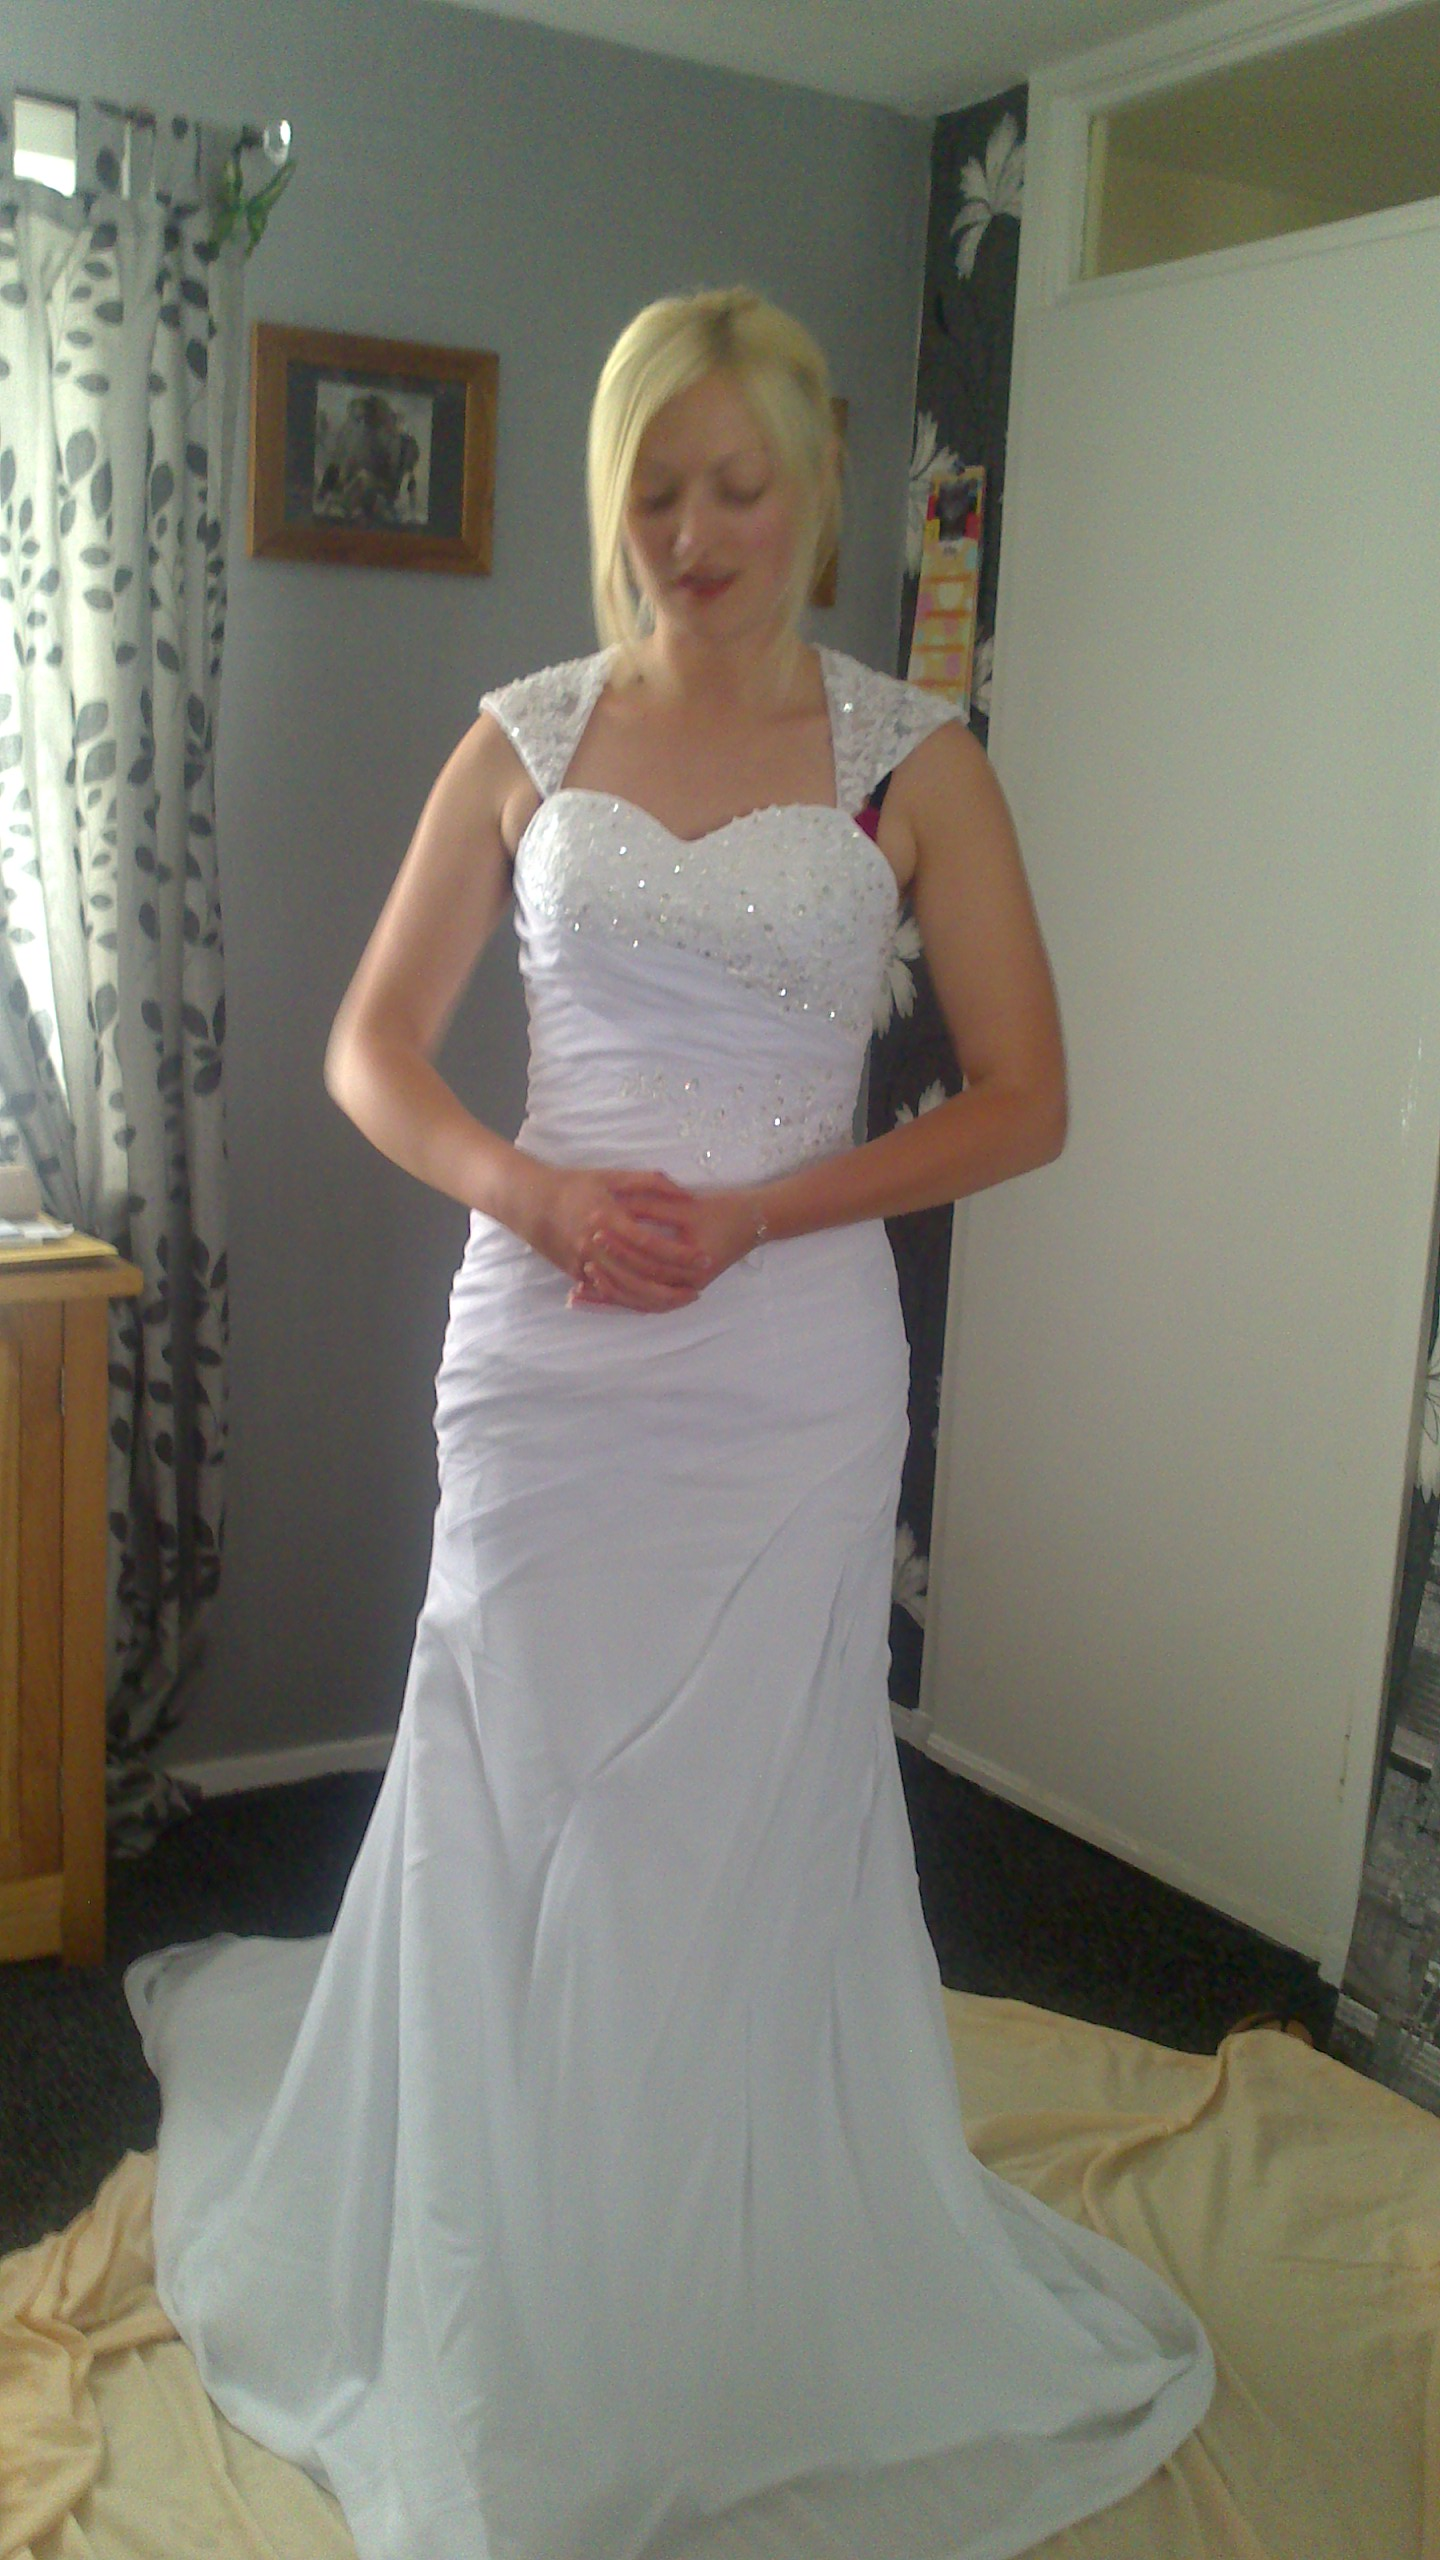 true wedding dress ebay Re has anyone brought a wedding dress from china The eBay Community